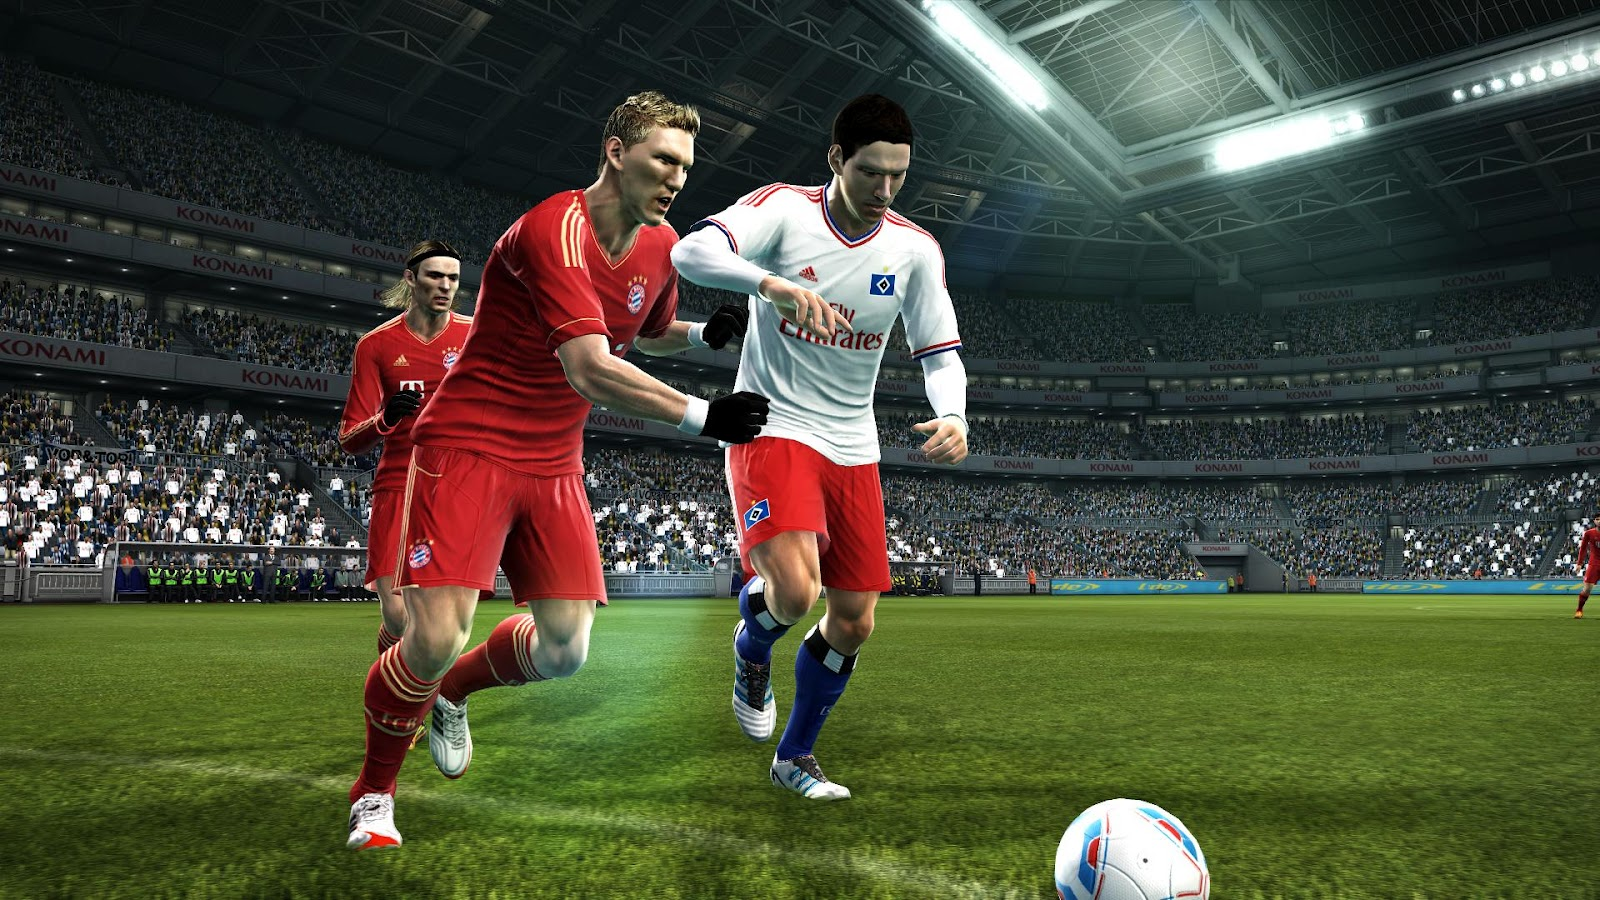 pes20122012 02 0412 05 45 12 - PES 2012 FULL + PESEDIT Patch 2.8 (NEW) MEDIAFIRE